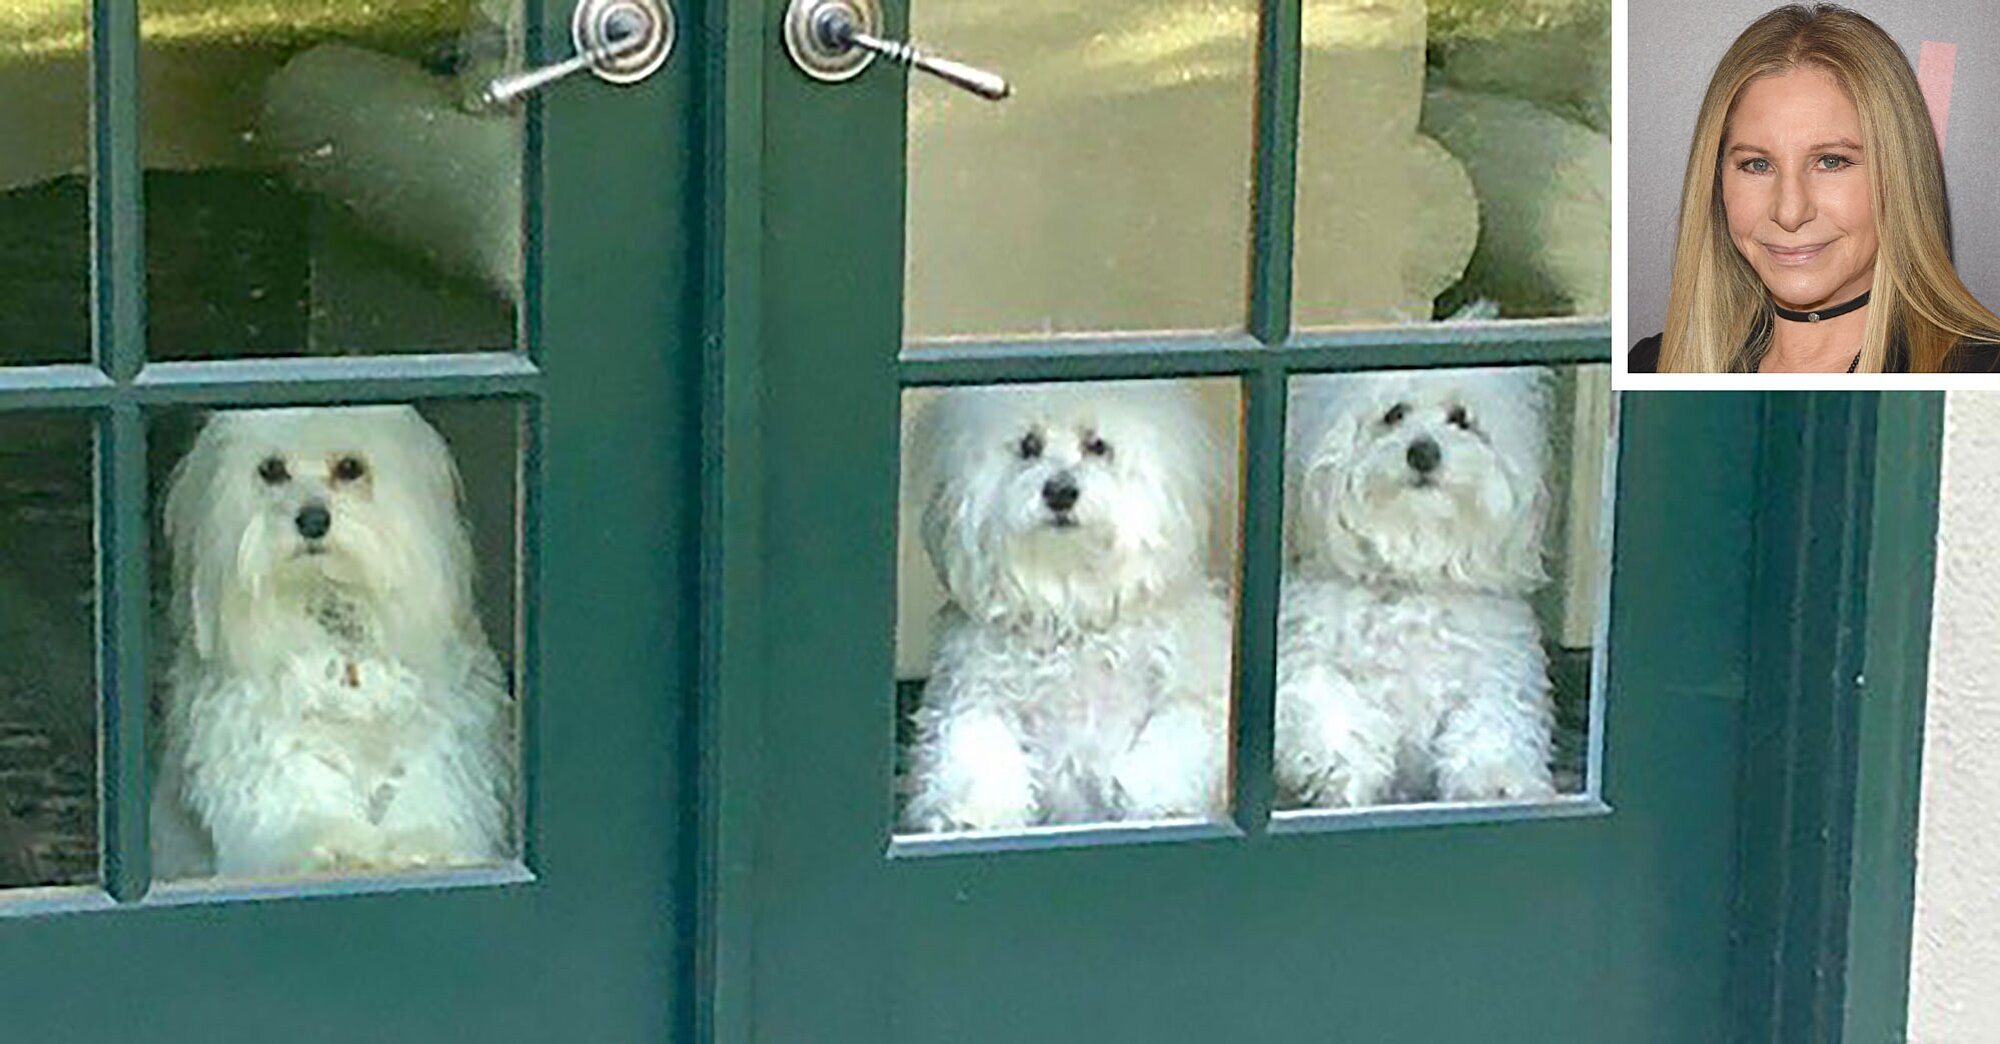 Barbra Streisand Posts Photo Of Dogs After California Fires People Com,How To Update Maple Kitchen Cabinets Without Painting